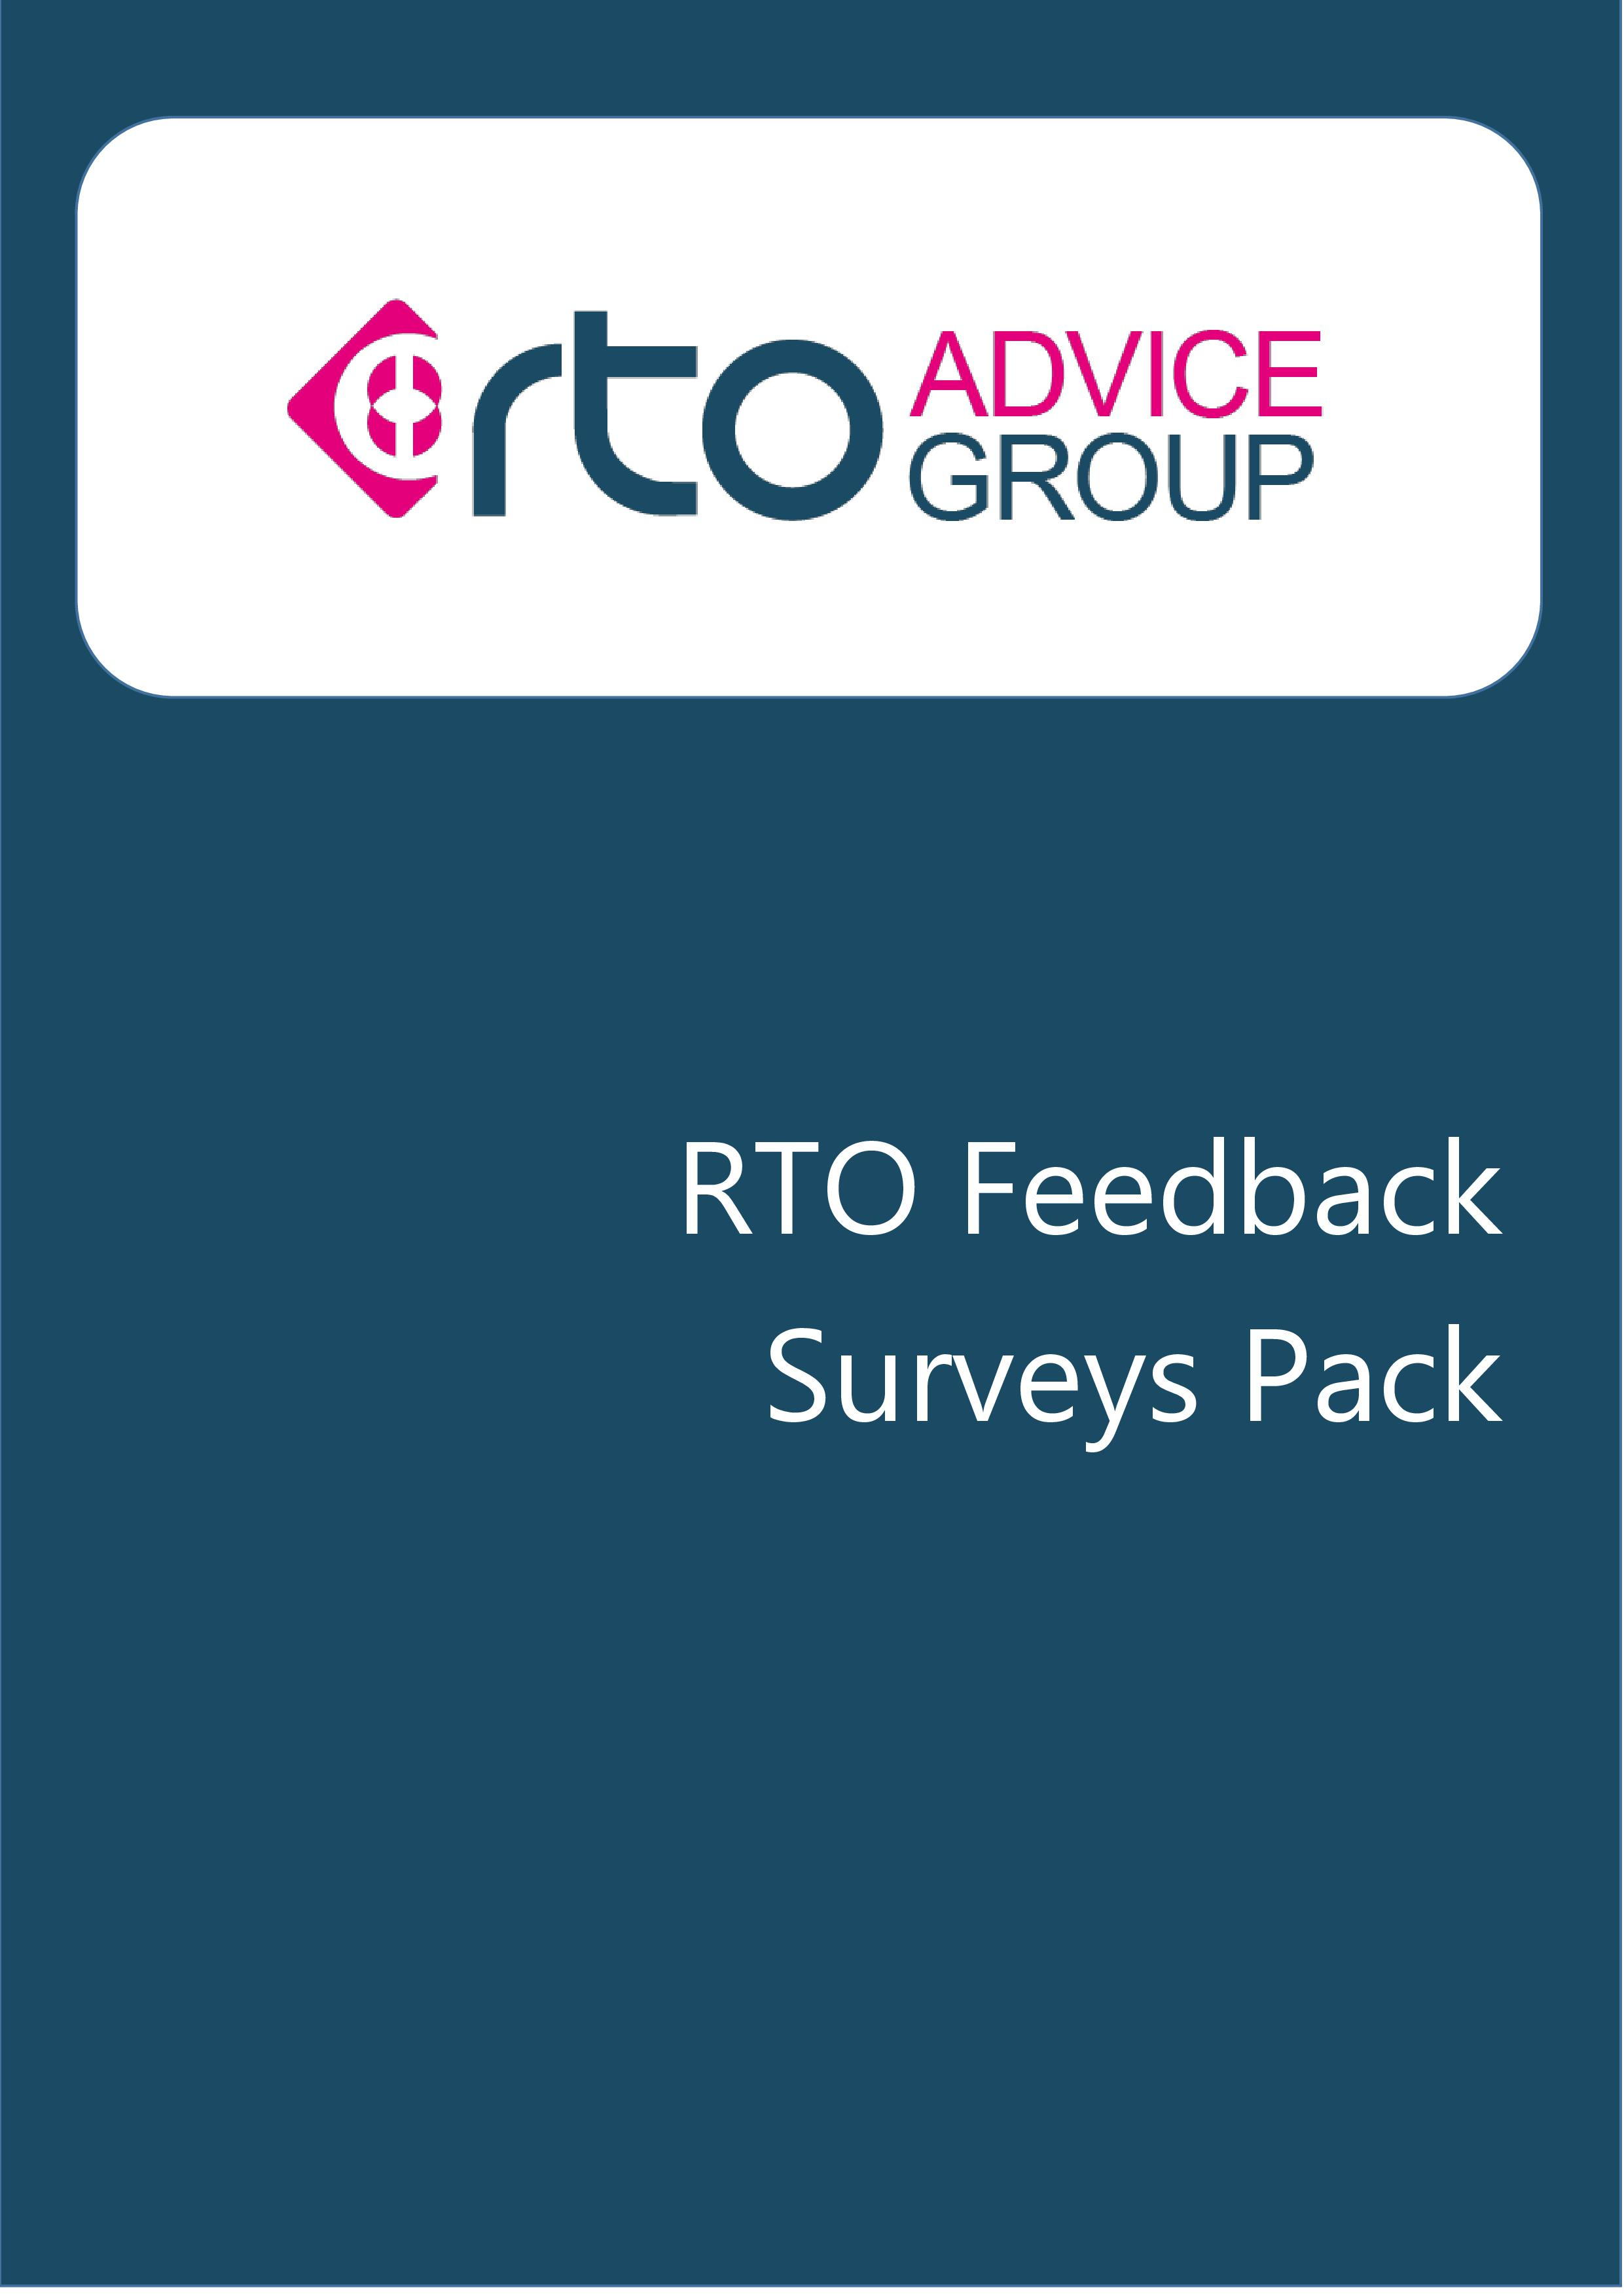 RTO Feedback Surveys Pack